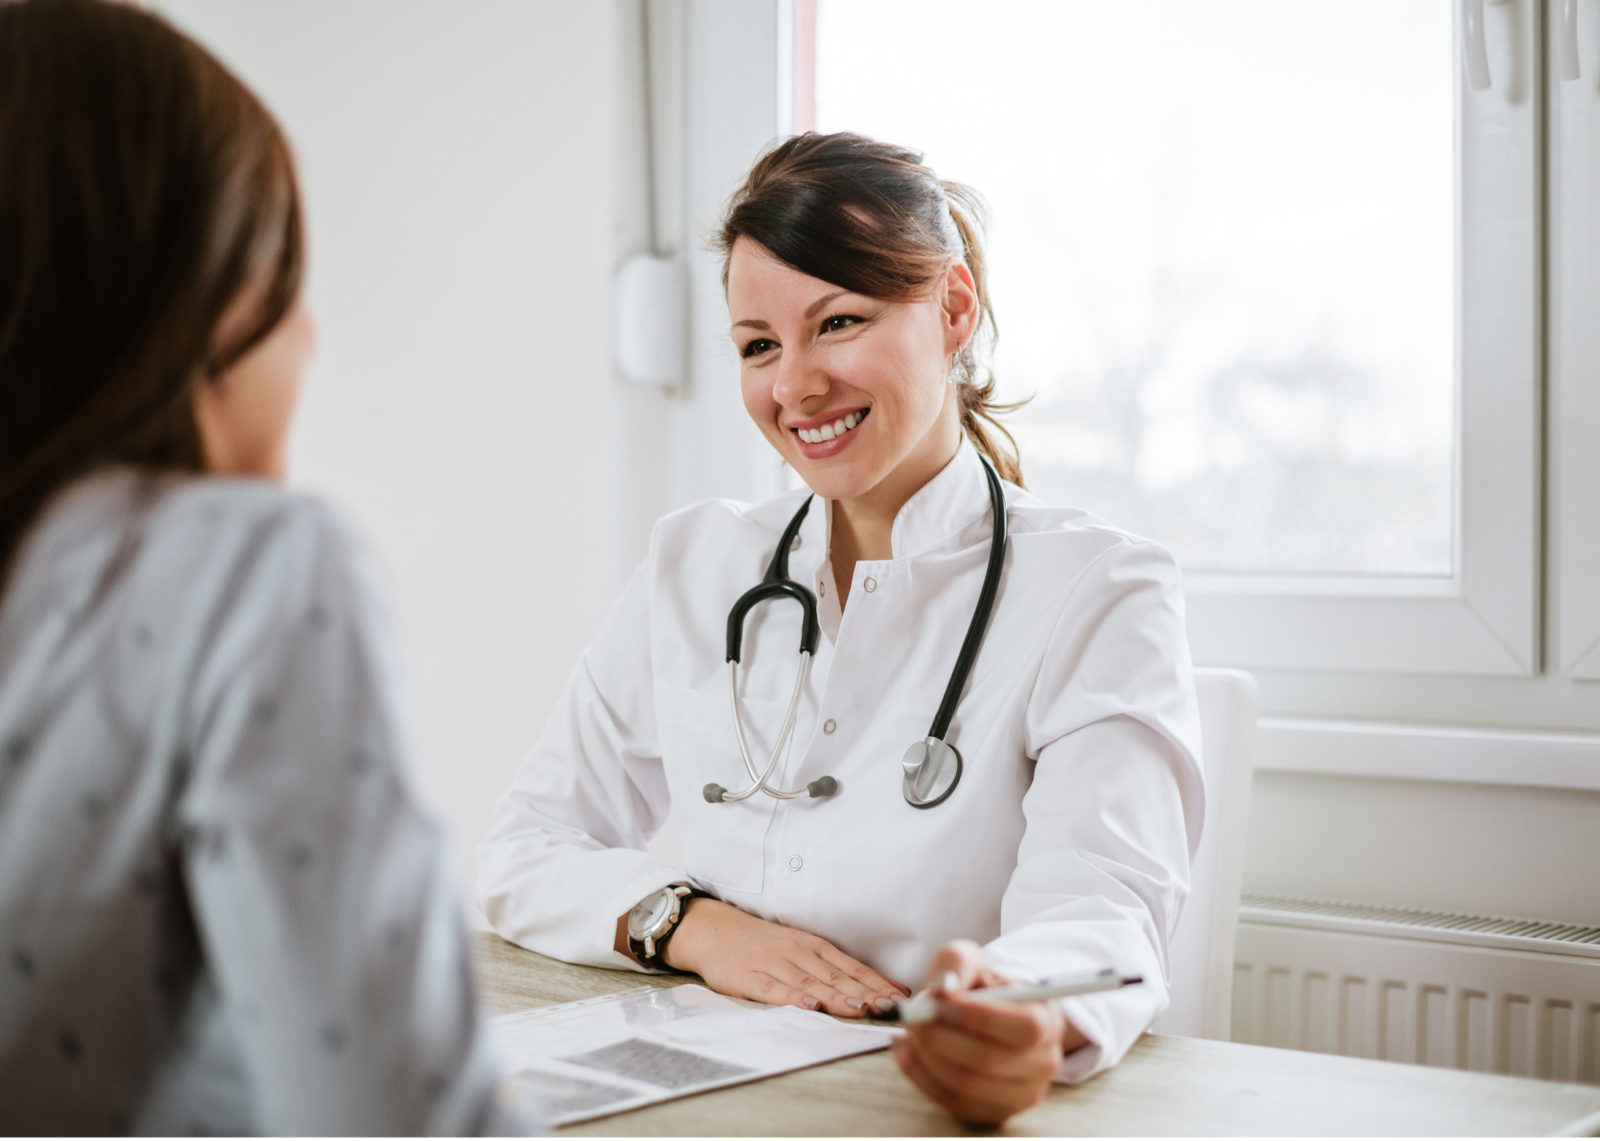 Female doctor meets with patient